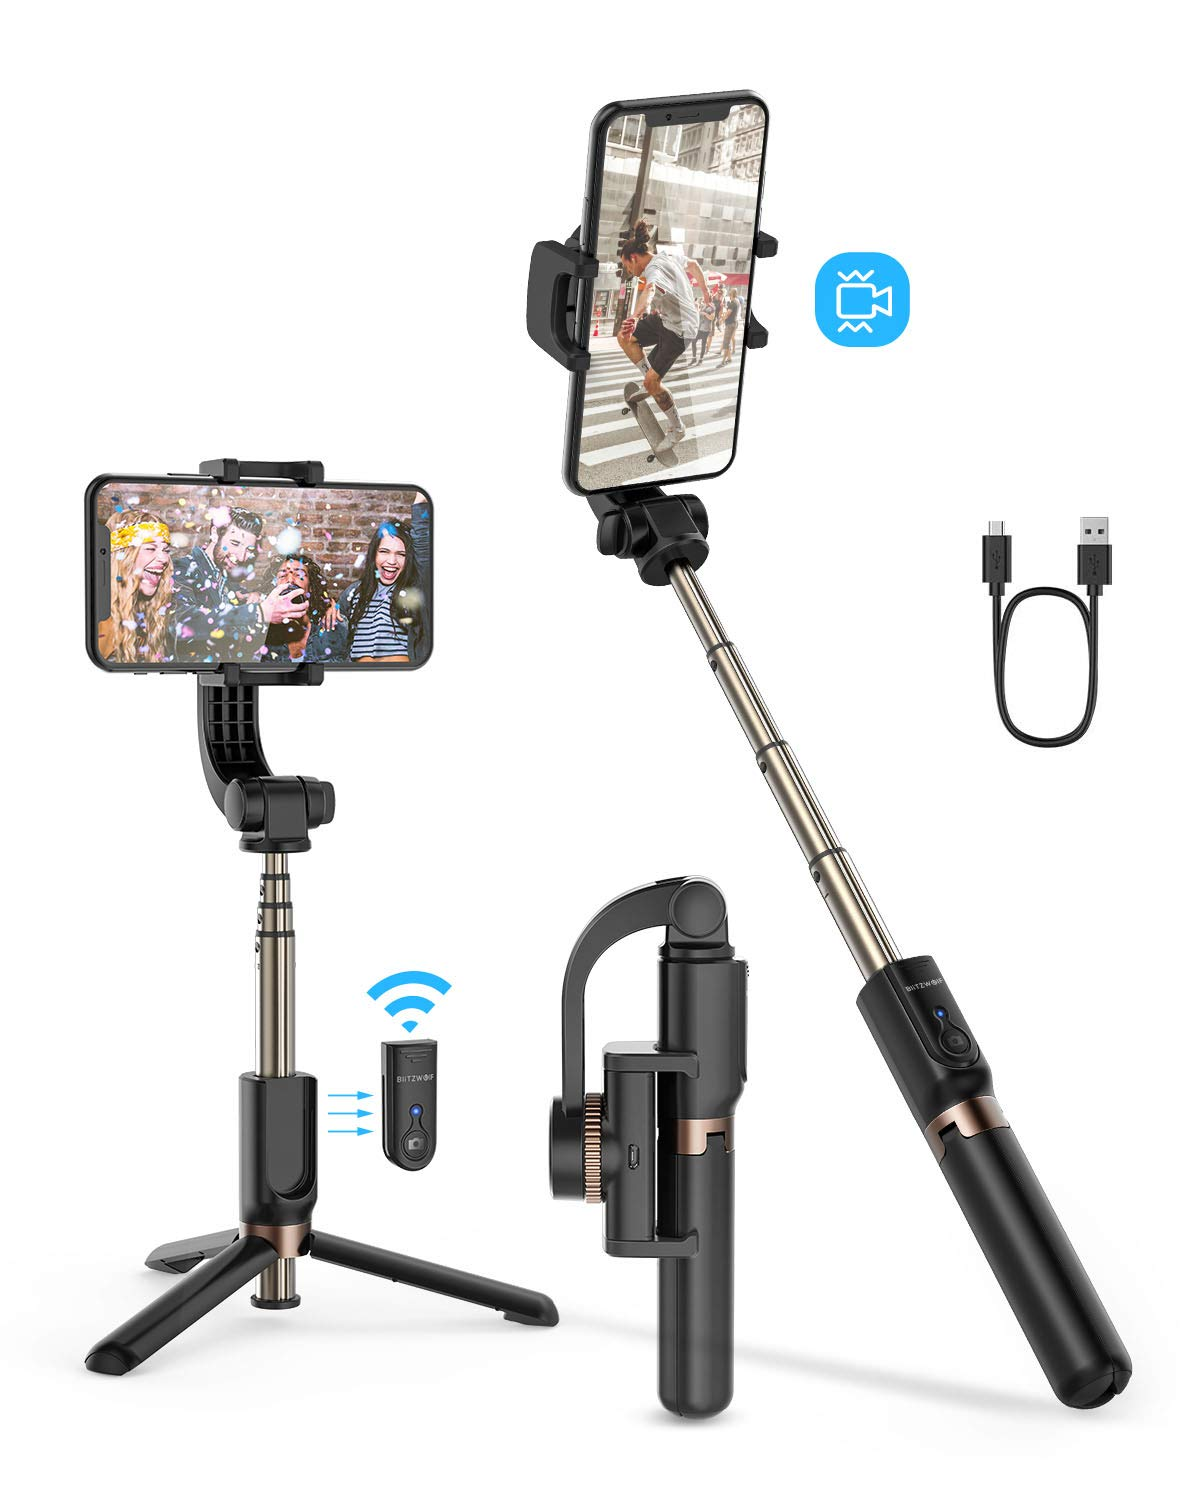 Selfie Stick Tripod, BlitzWolf Mini Extendable Selfie Stick Bluetooth with Anti-Shaking Stabilizer and Automatic Balance, One-Axis Gimbal for iPhone 11 Pro/XS Max/XS/XR/X/8/7/6, Galaxy S10/S9, Android by BlitzWolf